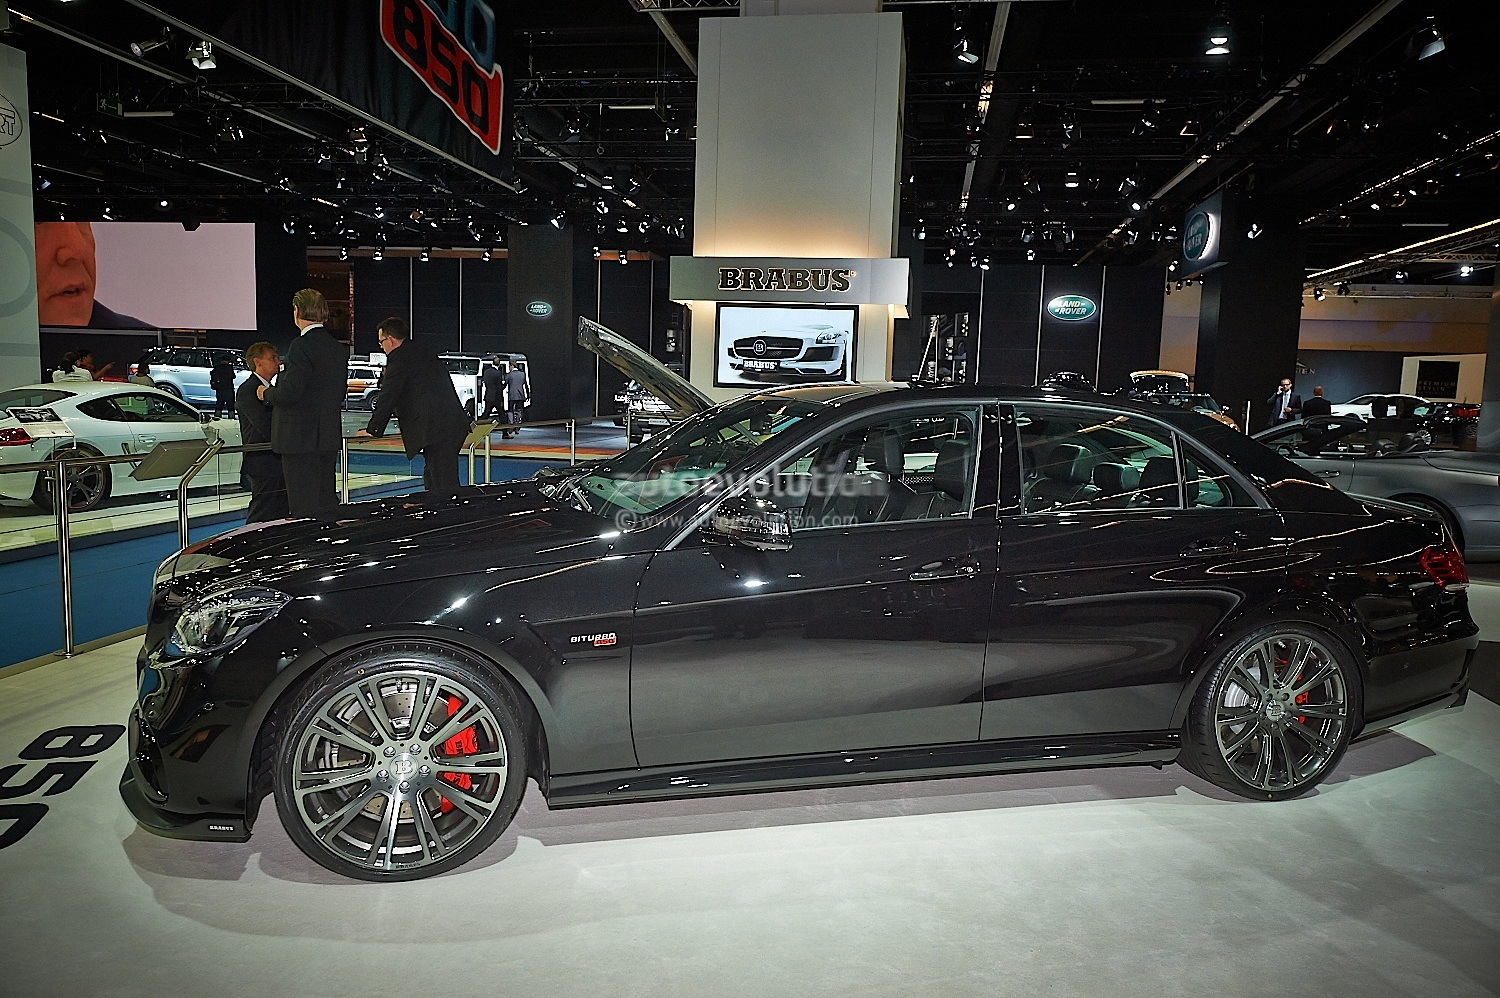 The Brabus 850 6 0 Biturbo 4matic Means Business Live